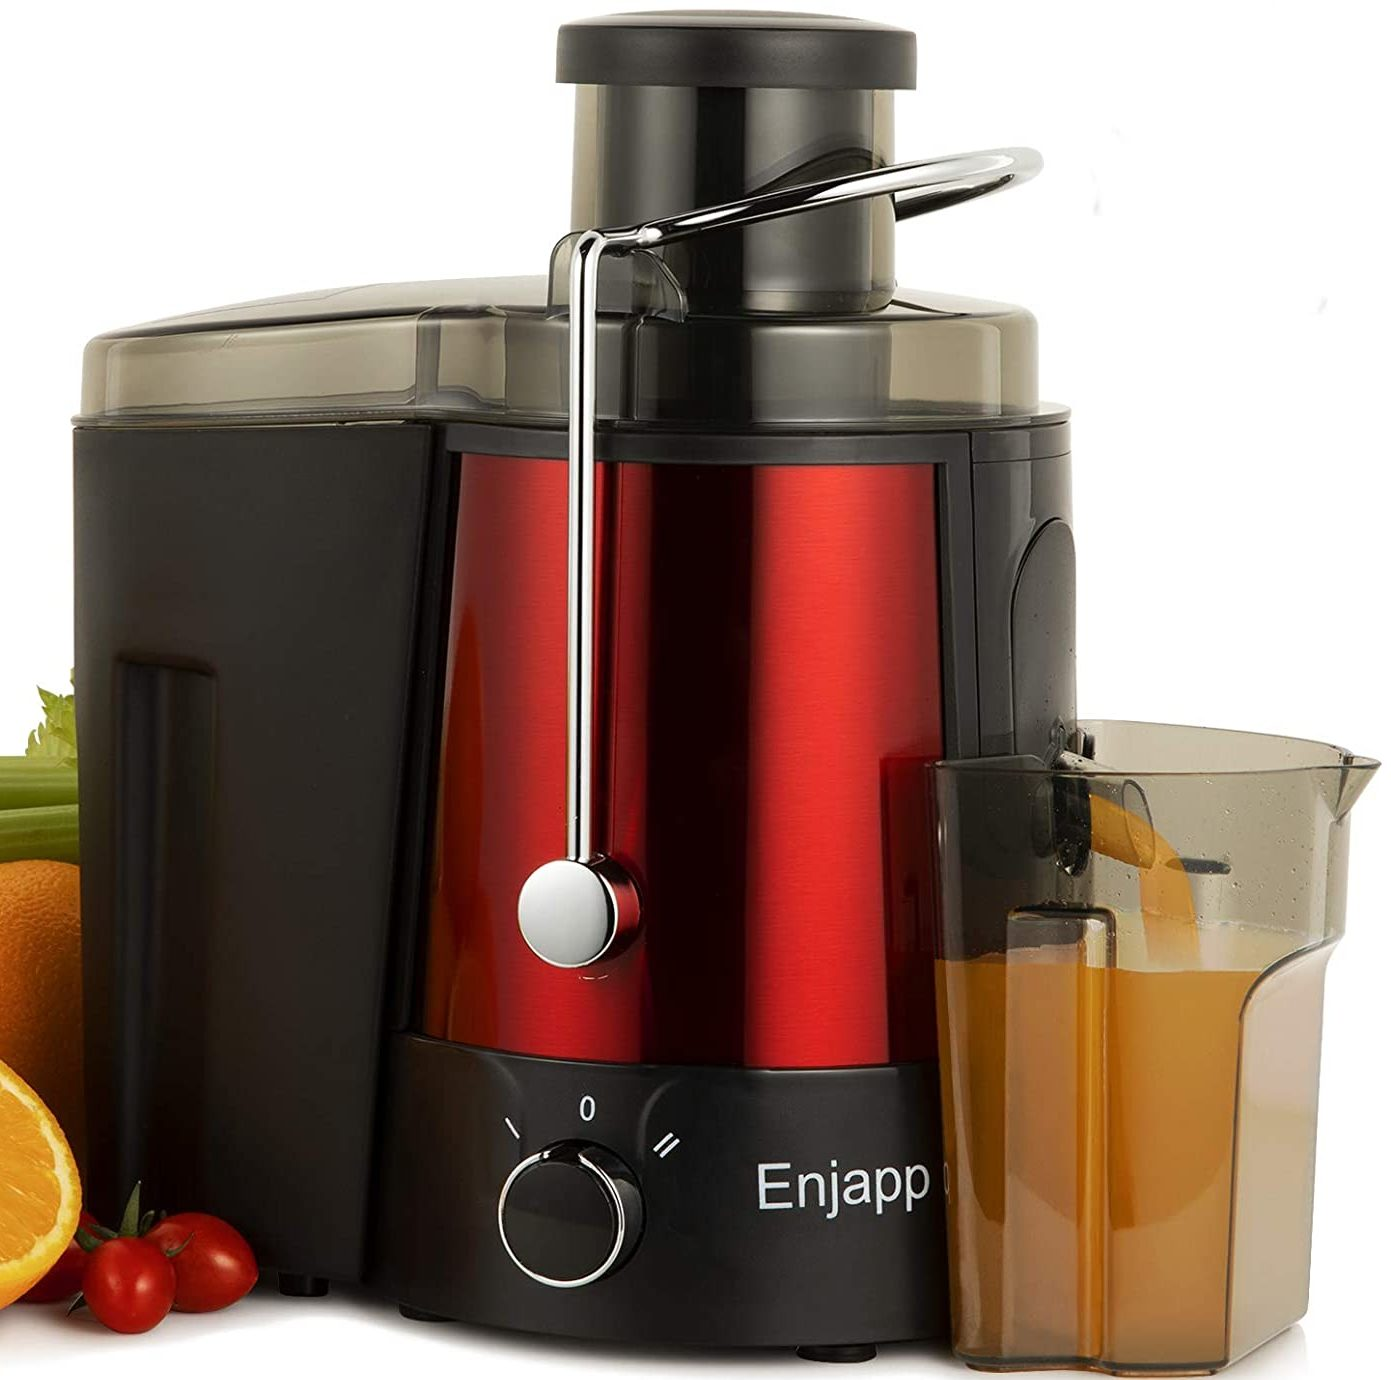 Enjapp Juice Extractor, Ultra-Fast Centrifugal Juicer Machines (600W, Black)